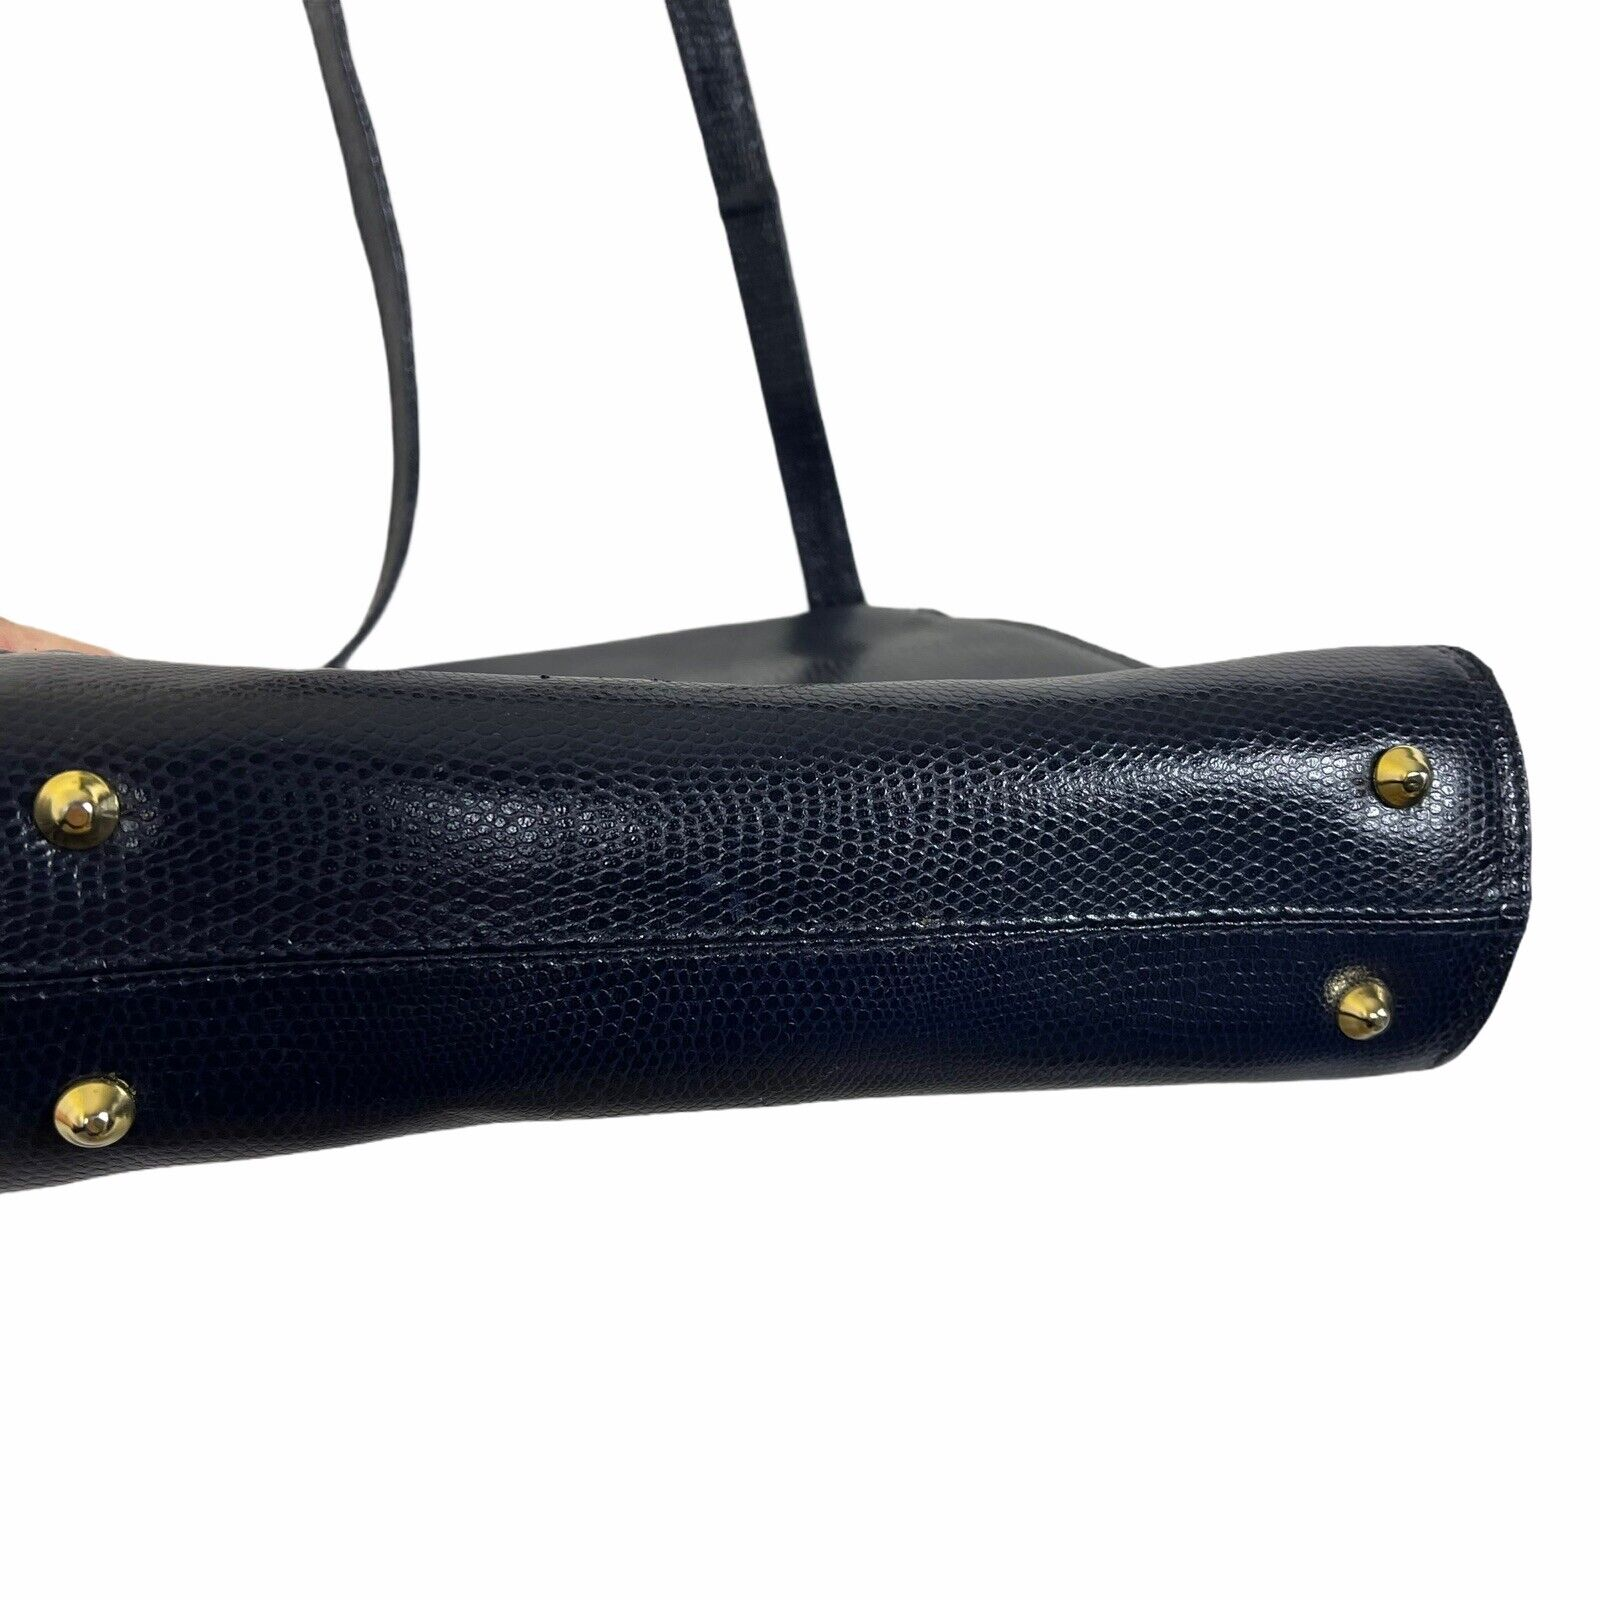 ARNOLD SCAASI NAVY LIZARD LEATHER WITH BOWS WOMEN… - image 3